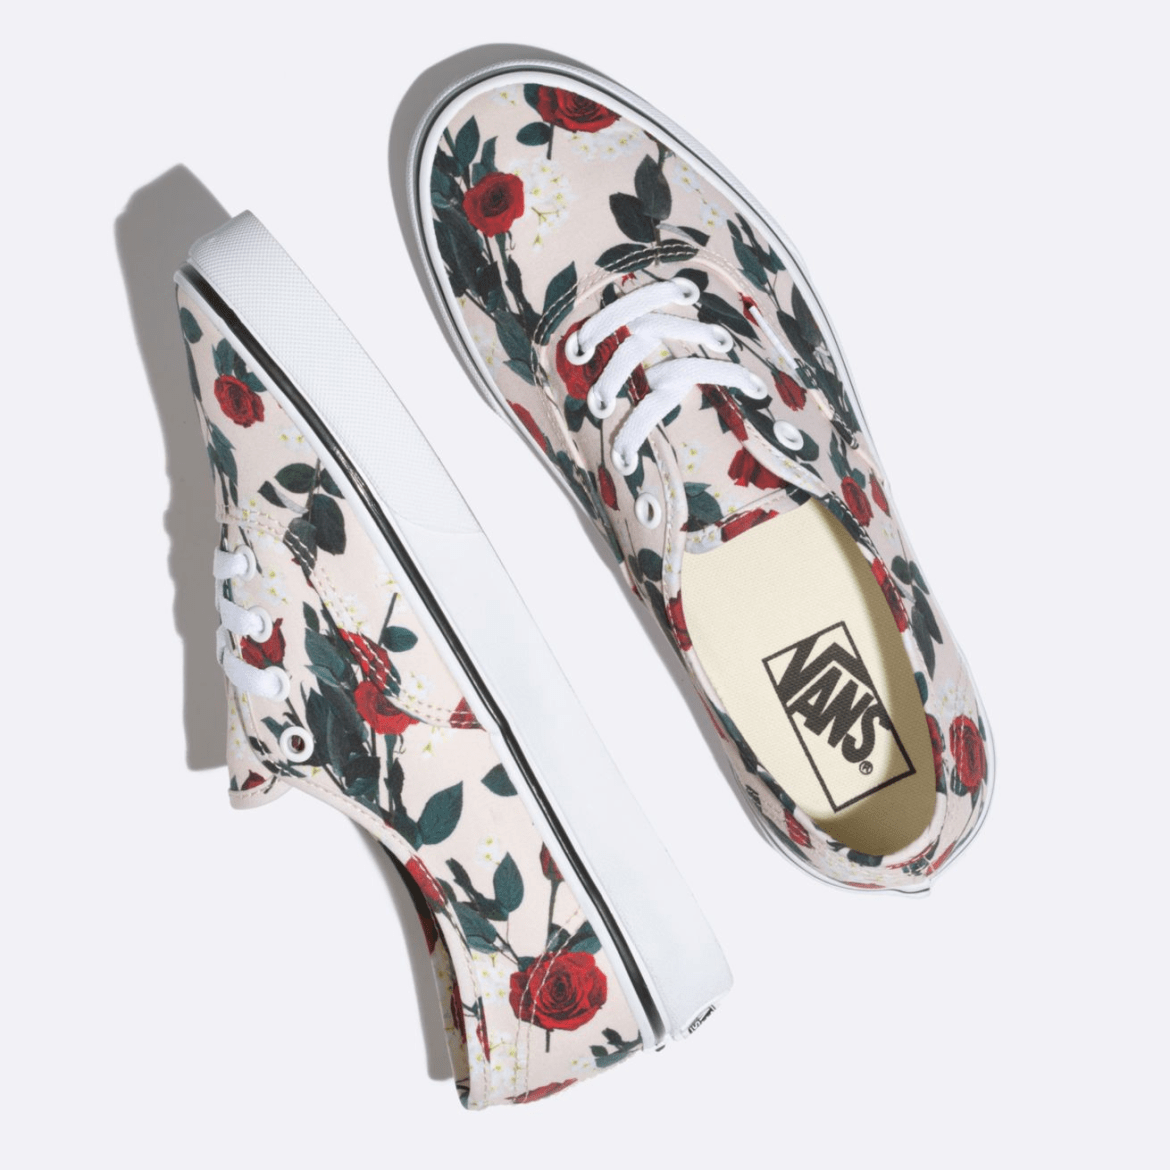 vans-sk8-hi-authentic-rose-print-8